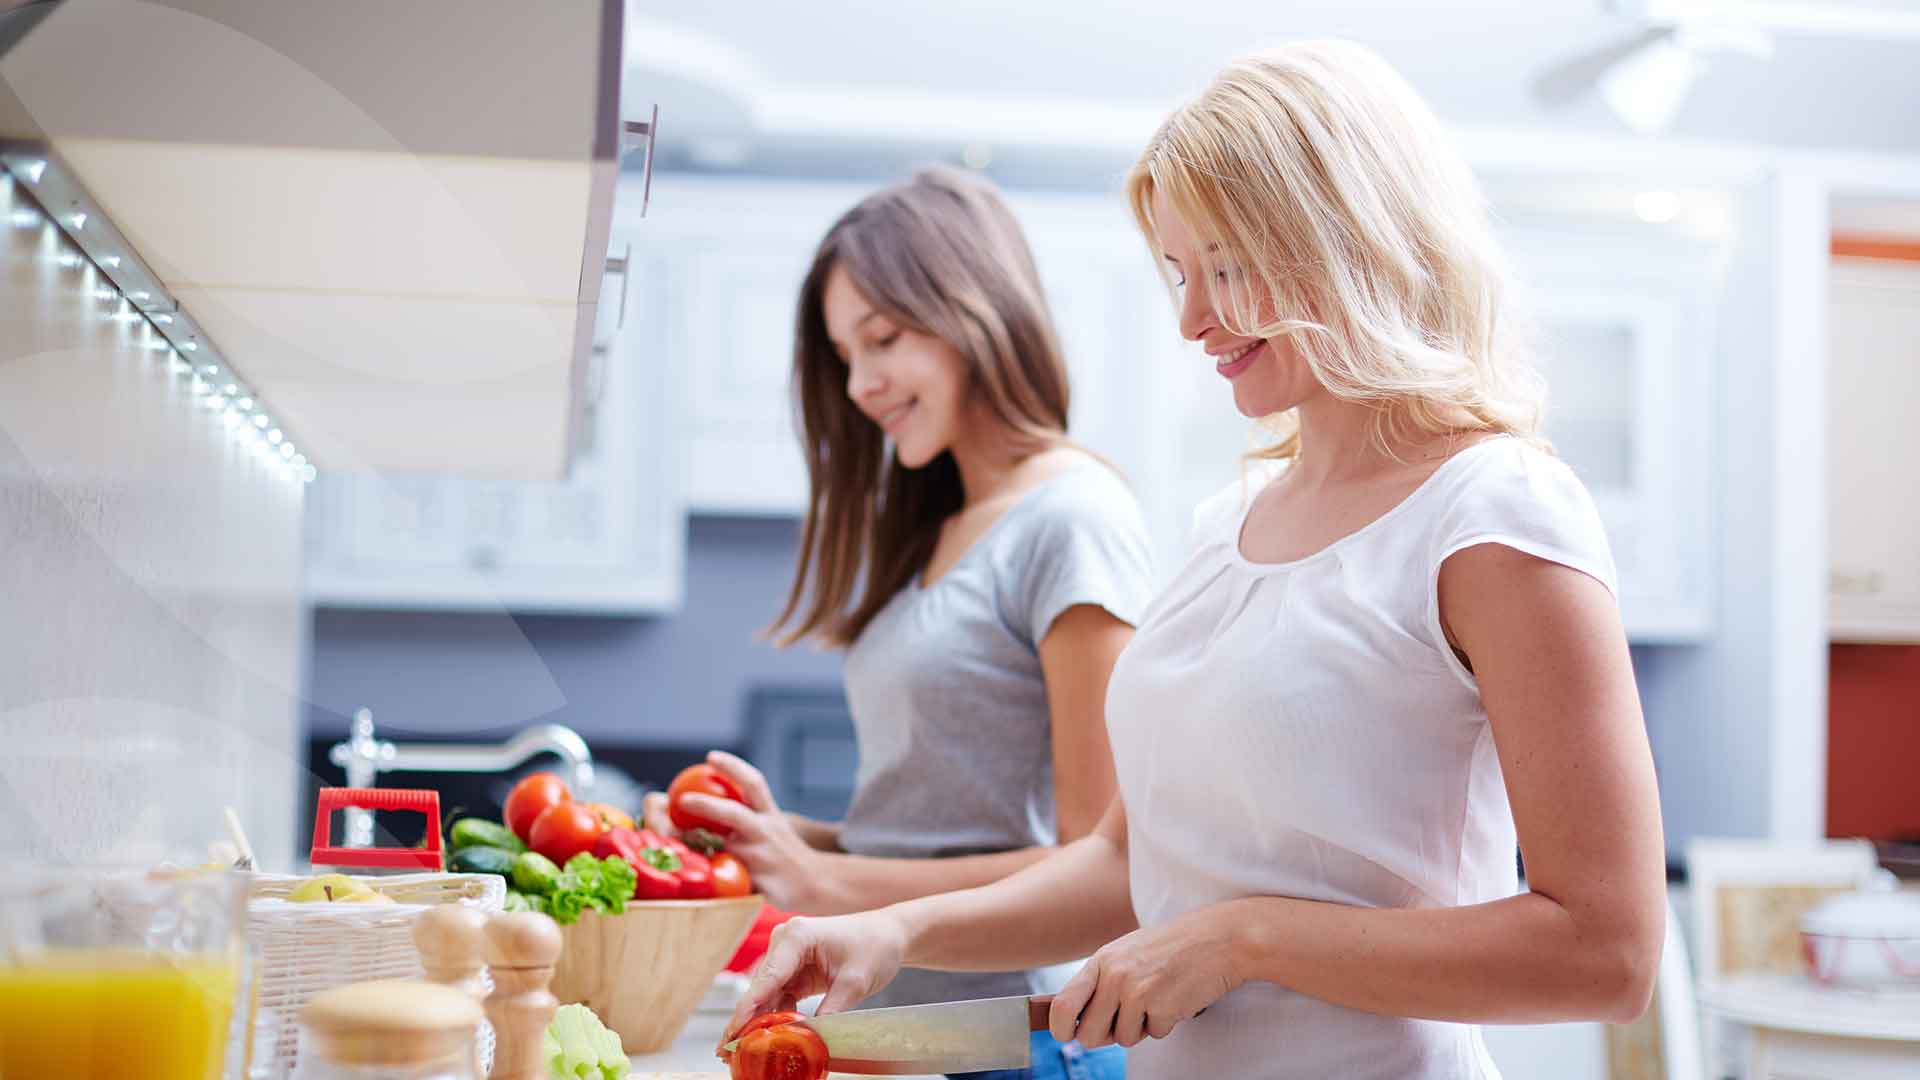 Women preparing healthy food with fresh ingredients